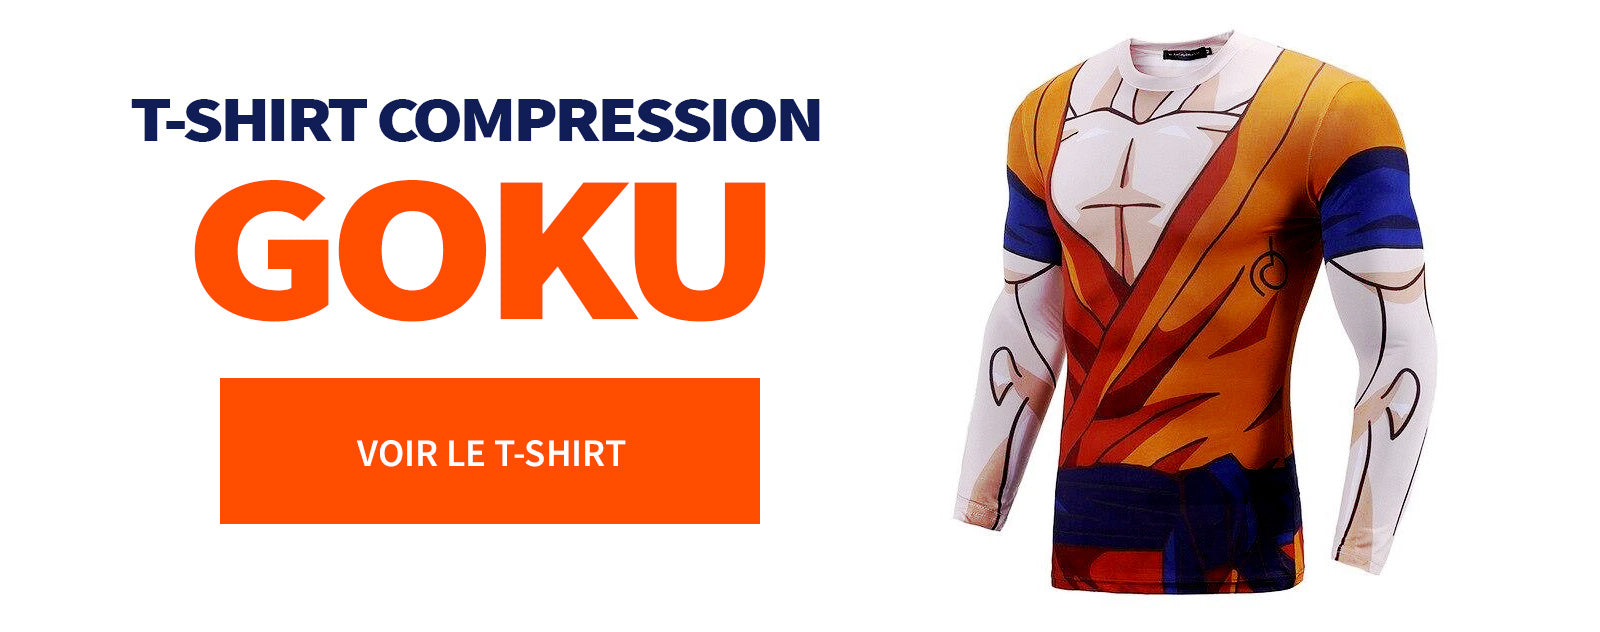 T-Shirt Compression Goku